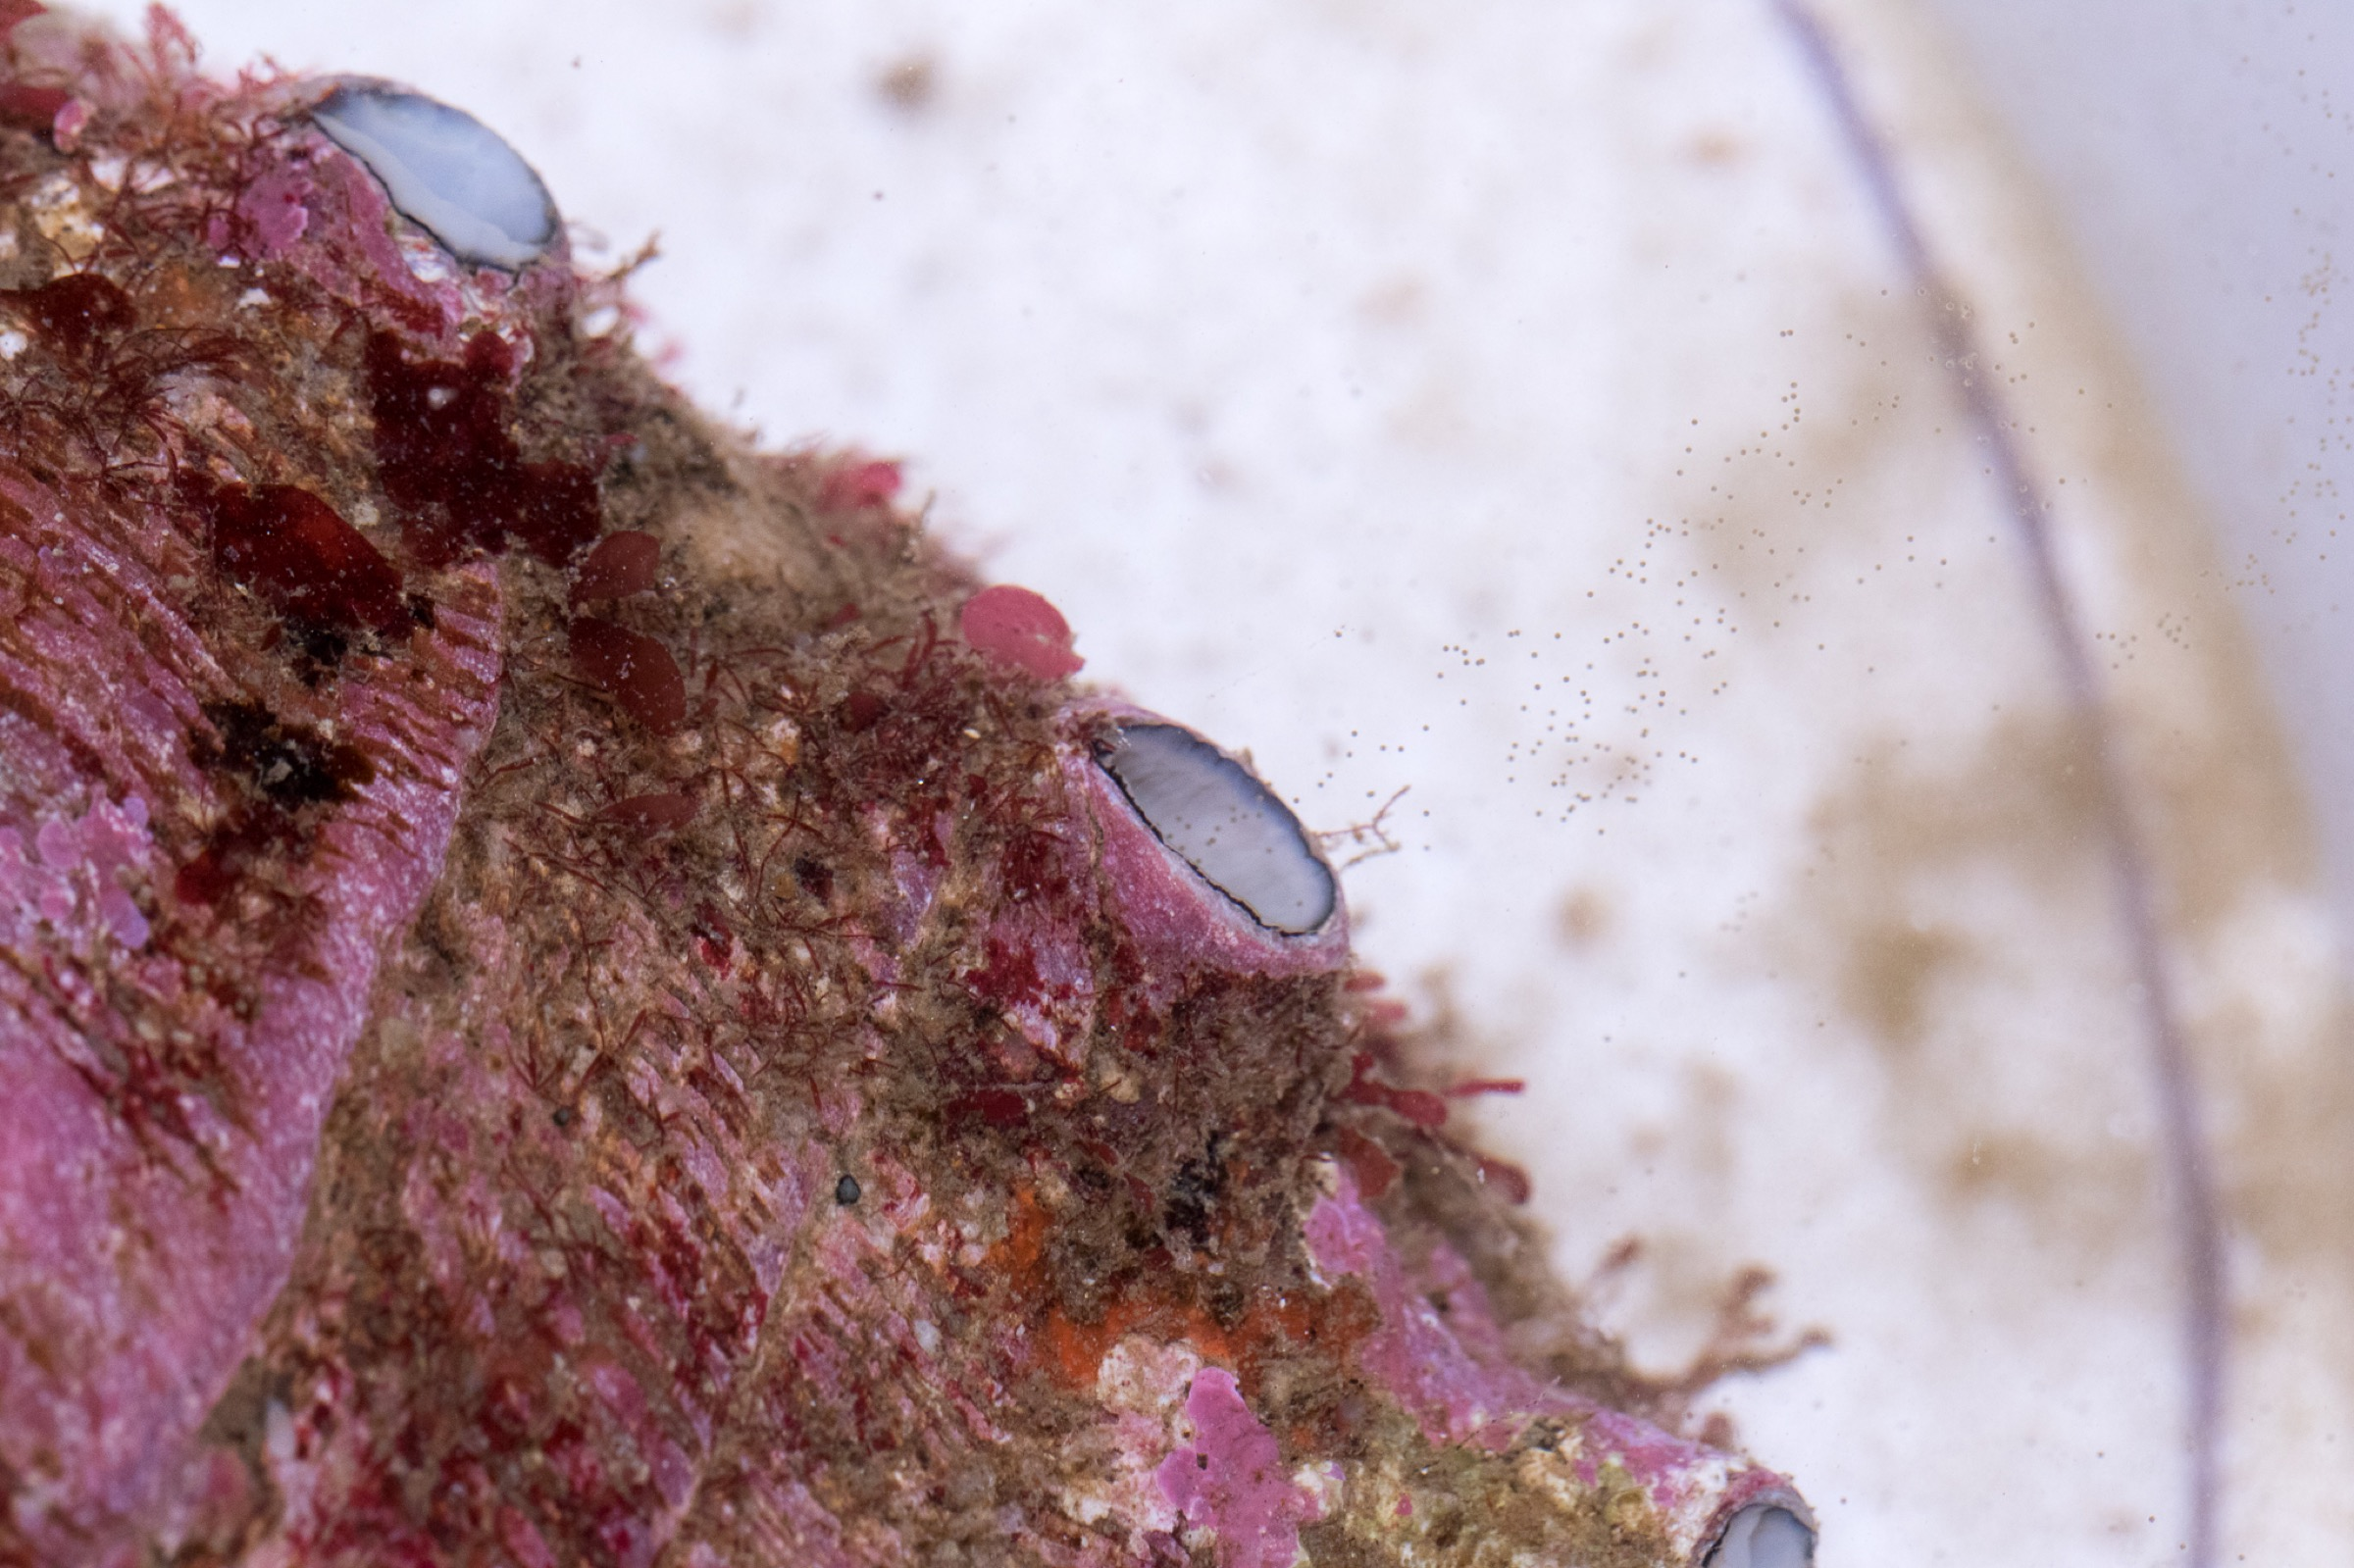 The wild female abalone releases hundreds of thousands of tiny, brown eggs from one of the pores on her shell.